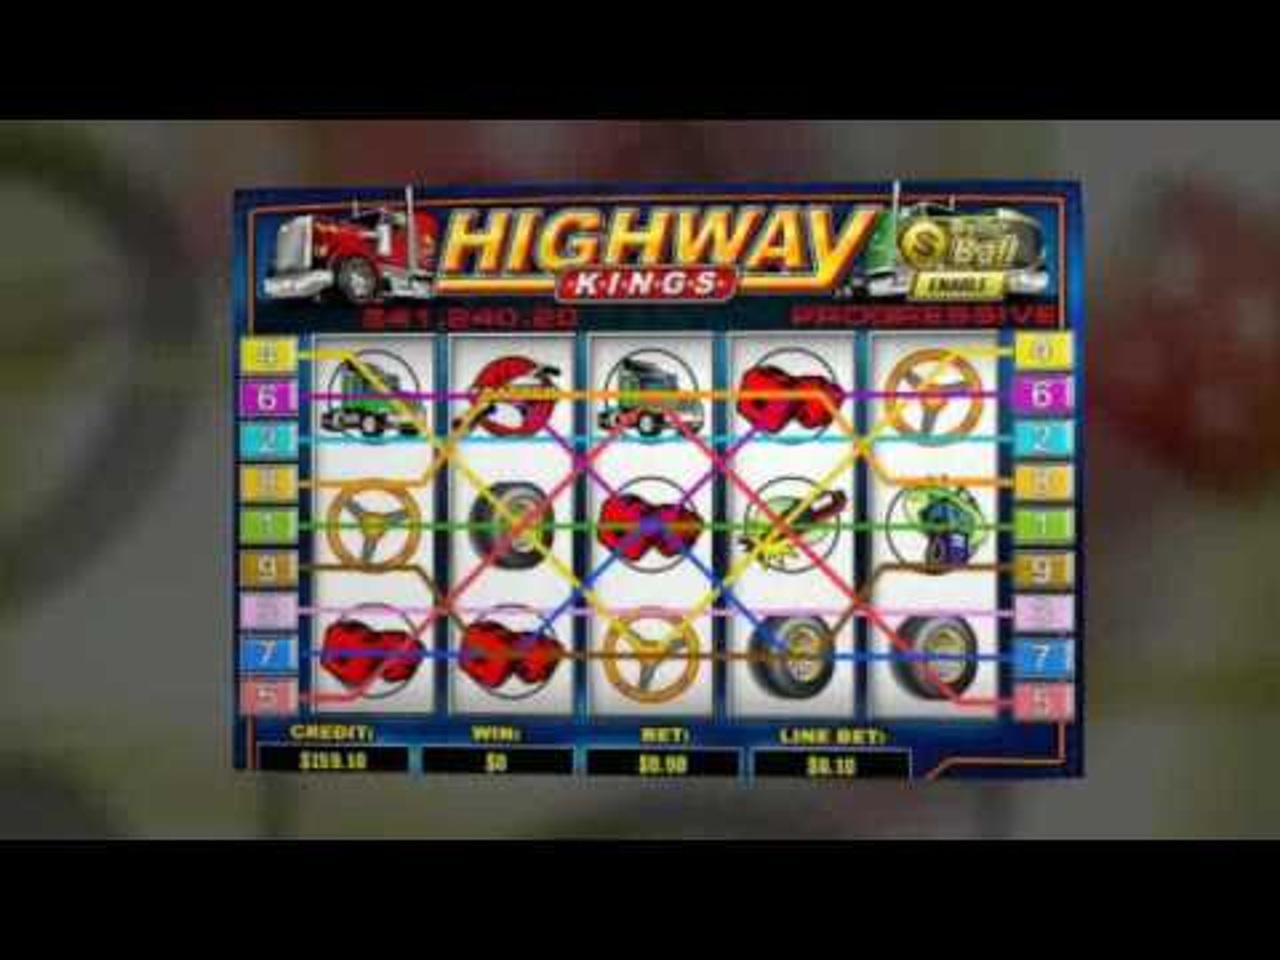 Highway king slot online